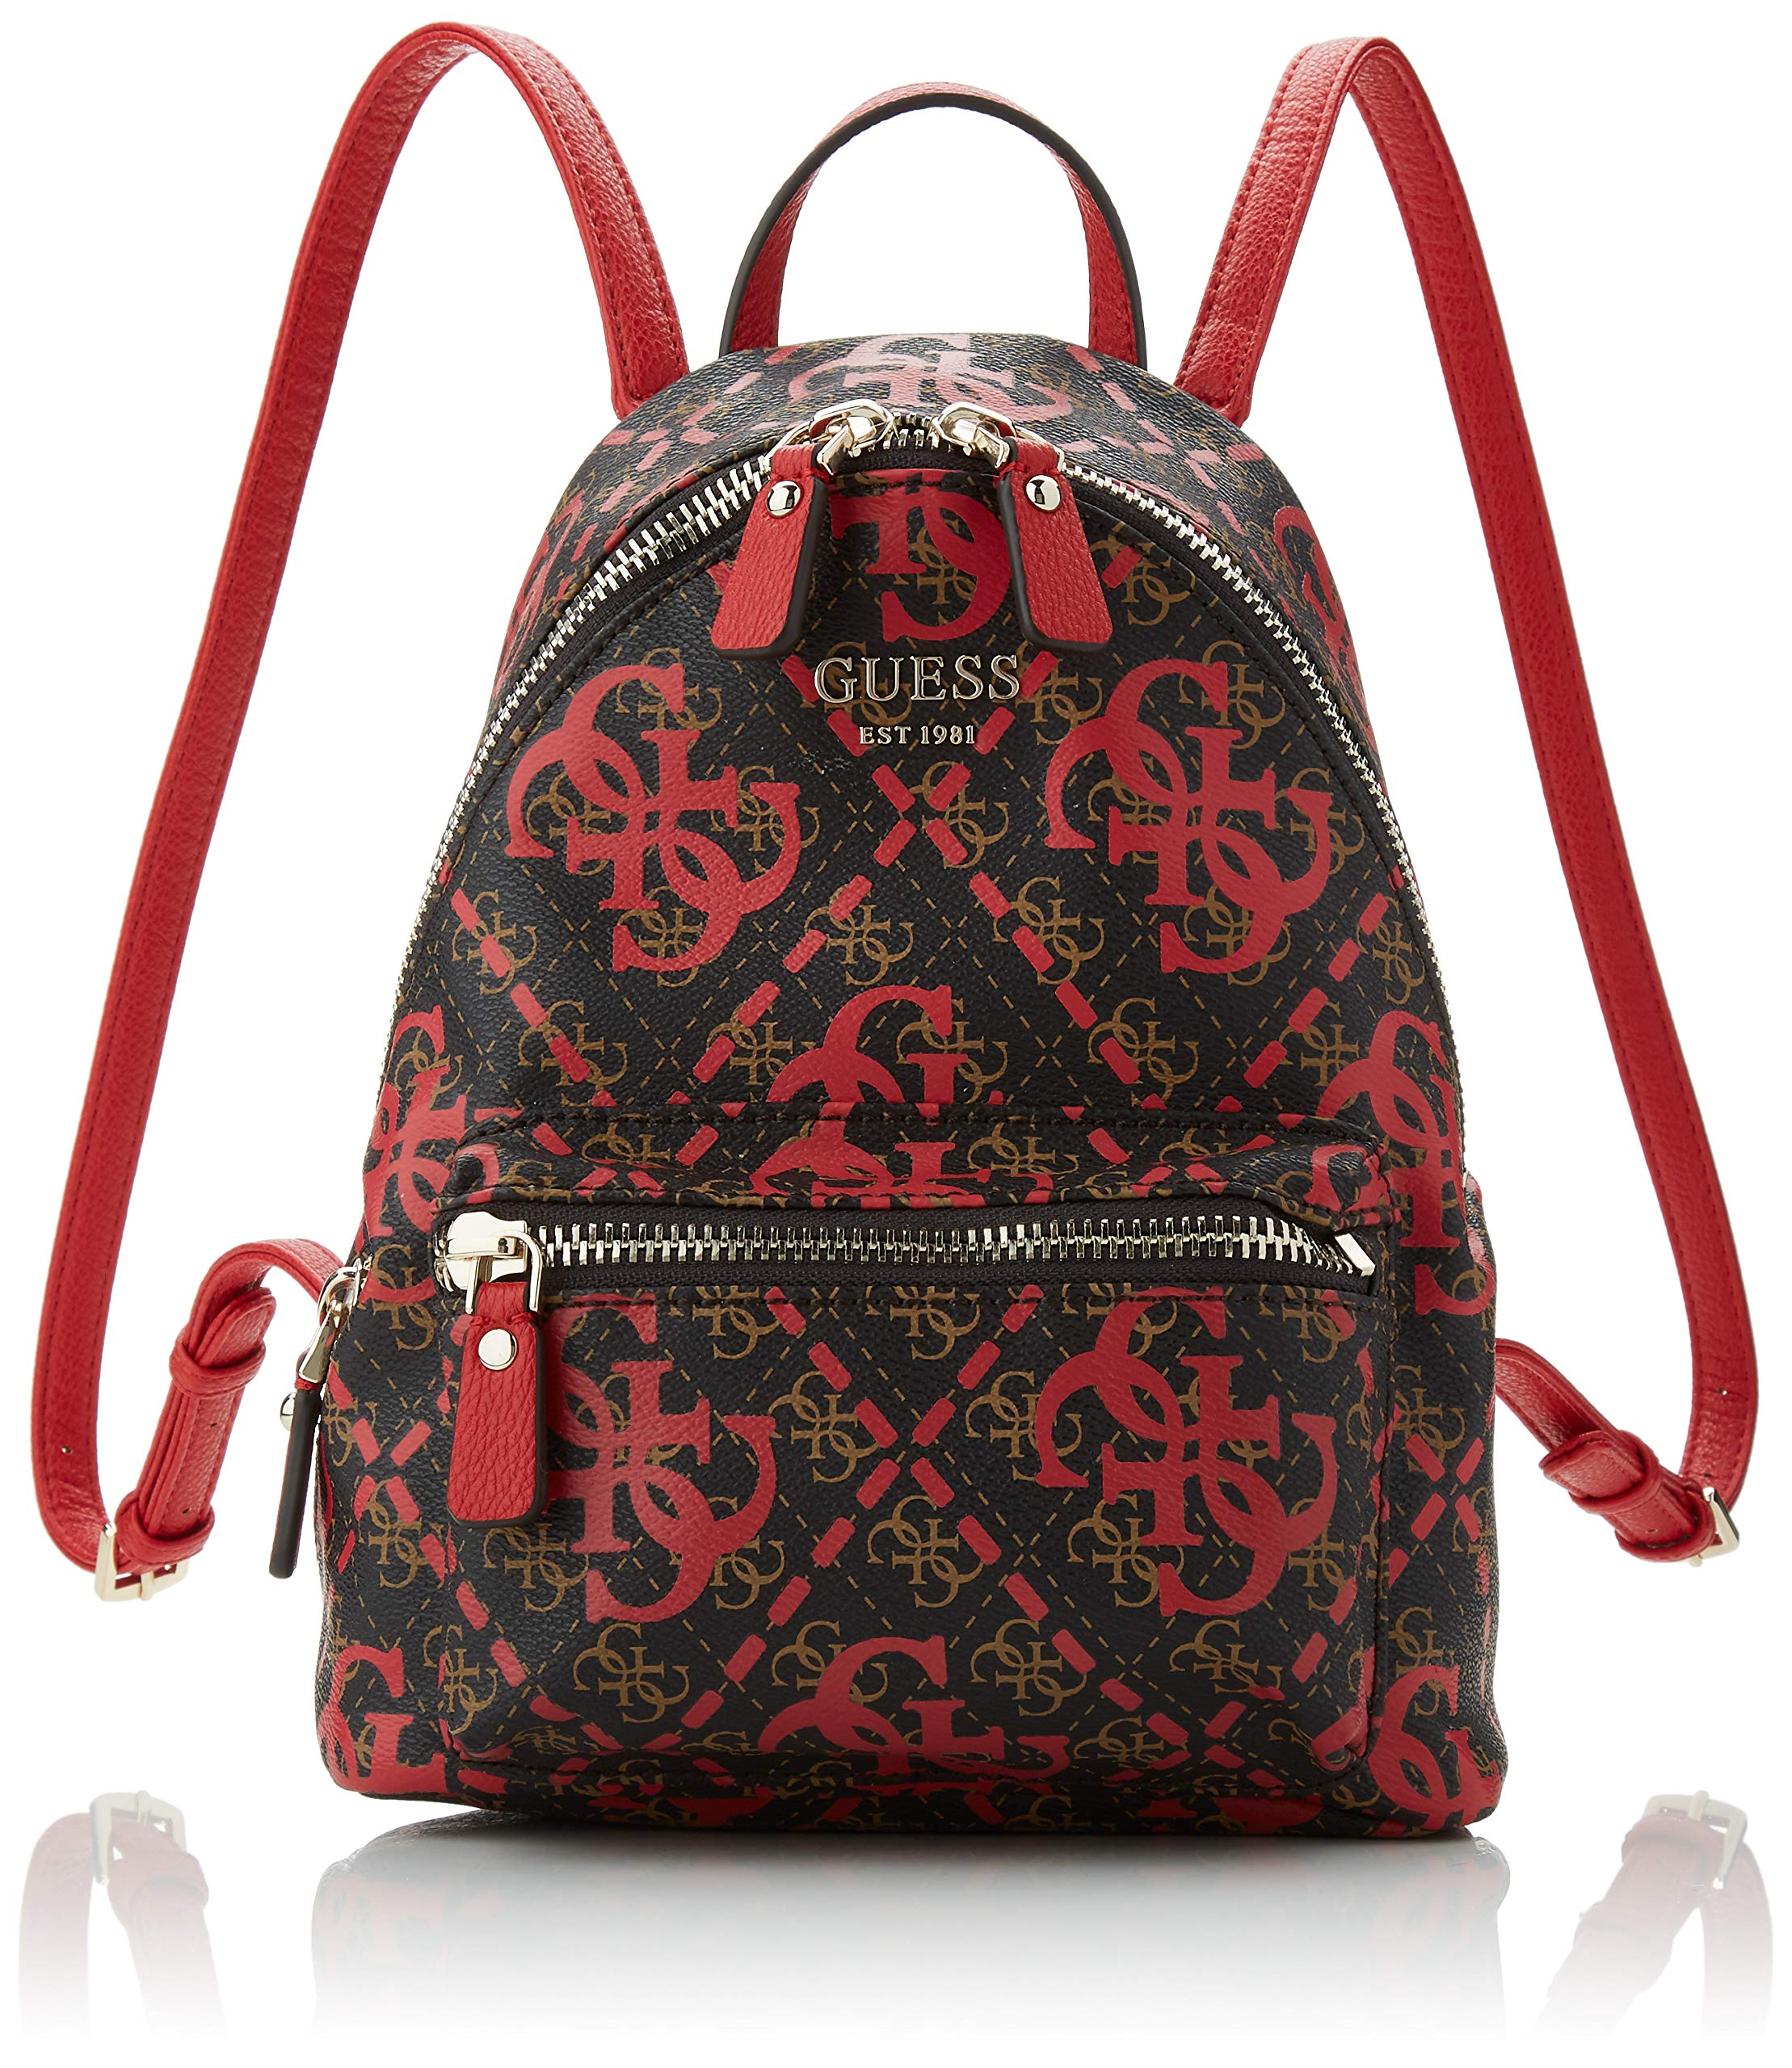 91B%2BkkjMSPL - Guess - Leeza Backpack, Mujer, Multicolor (Red Multi), 22x29x10.5 cm (W x H L)